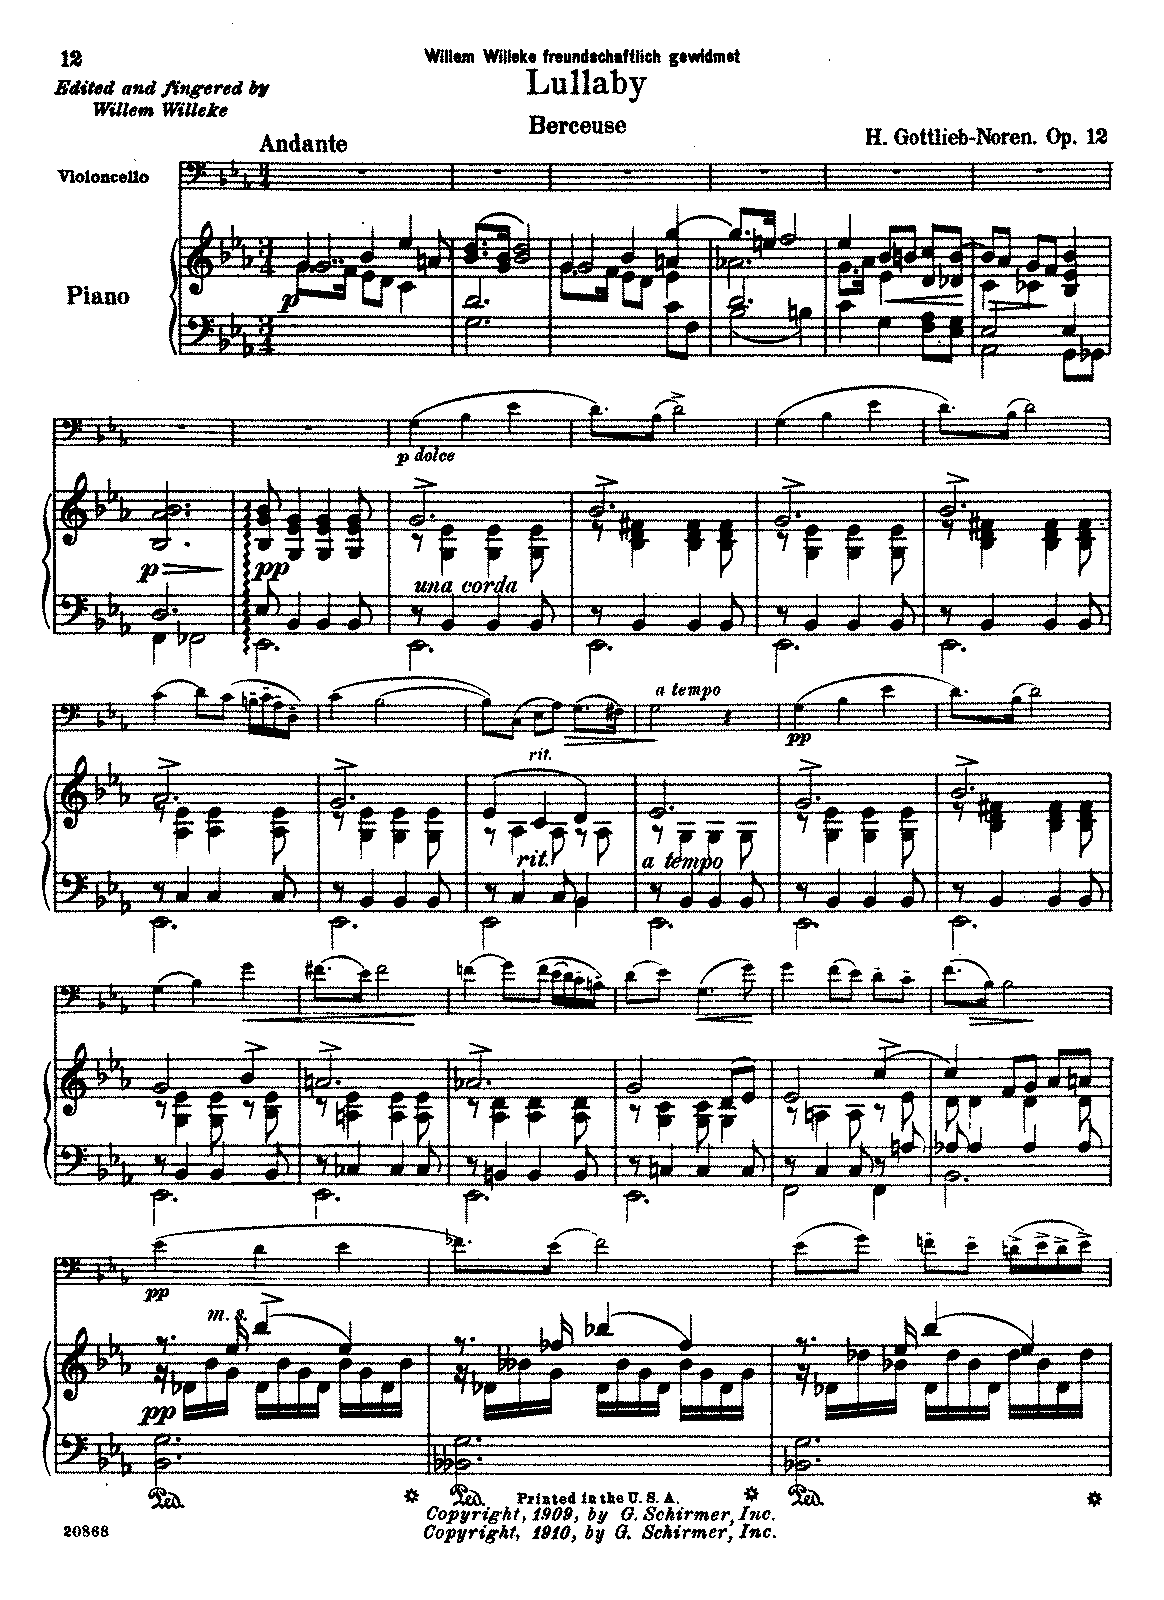 PMLP236795-Gottlieb-Noren - Lullaby Berceuse Op12 (Willeke) for cello and piano.pdf